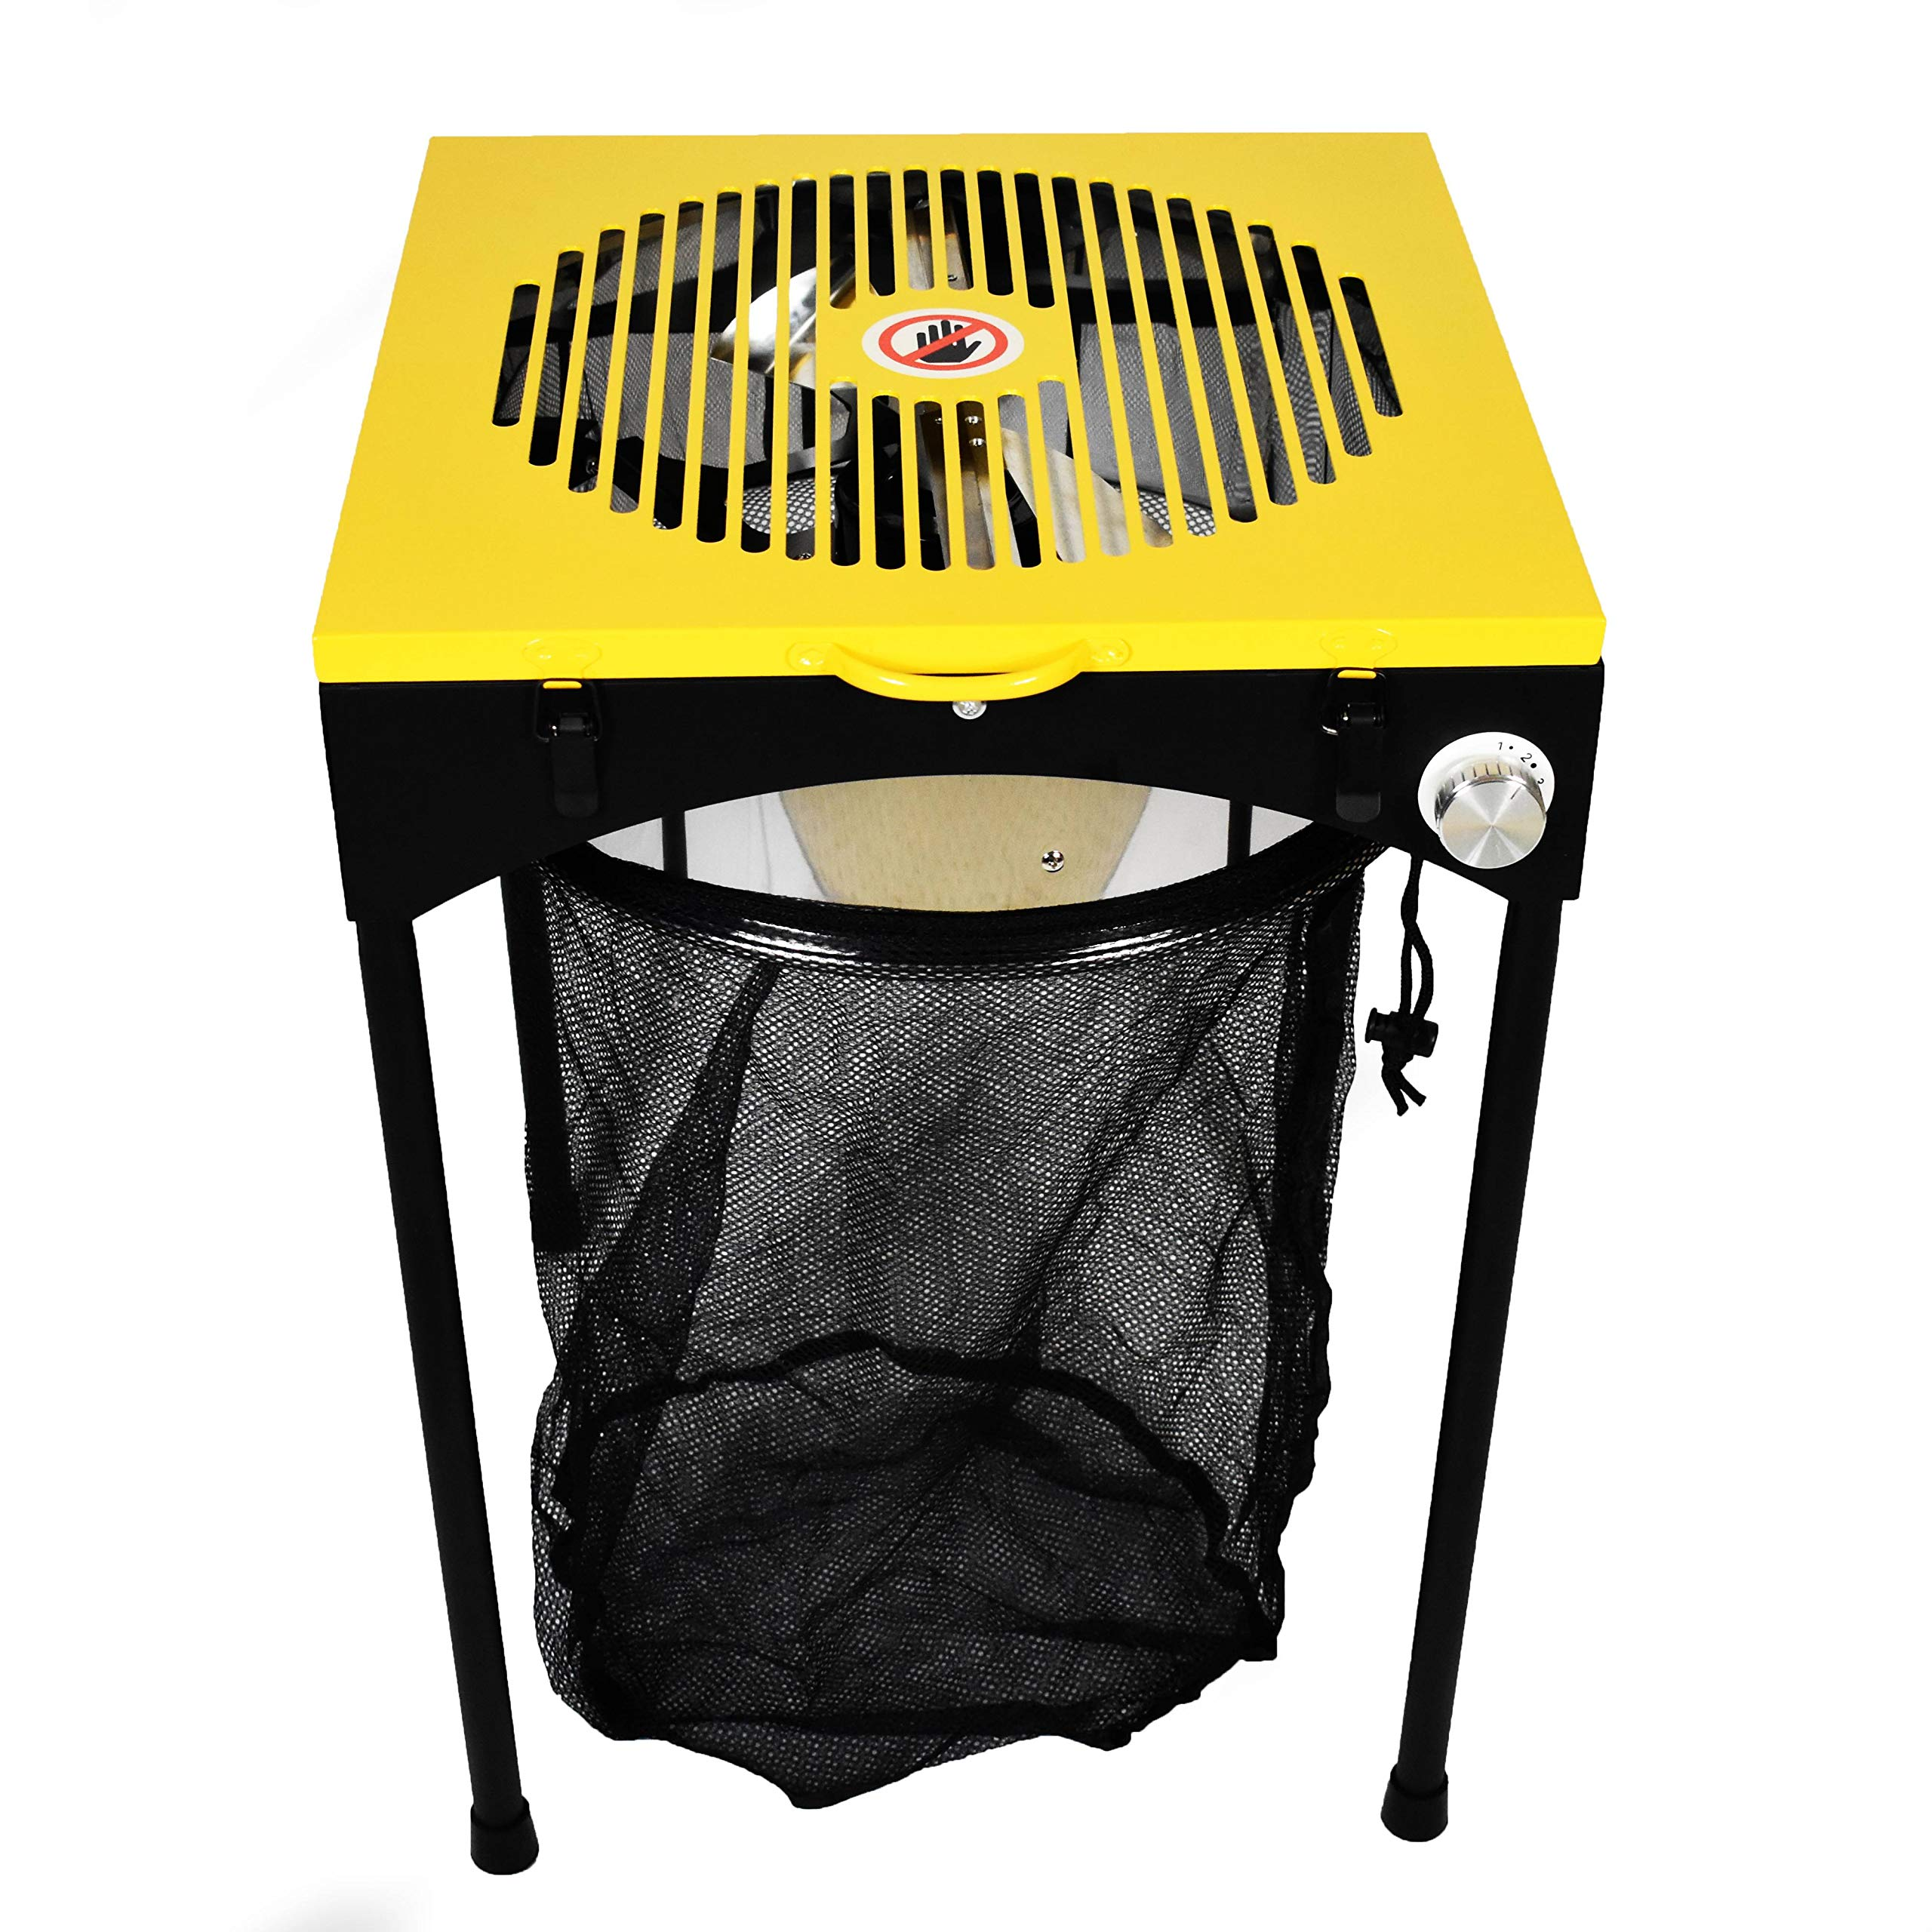 Origin Fleet 18-Inch Bud Leaf and Plant Flower Automatic Trimmer Reaper Hydroponics Machine with 3-Speeds, 6 Replacement Sharp Steel Cutting Blades and Bag by Origin Fleet